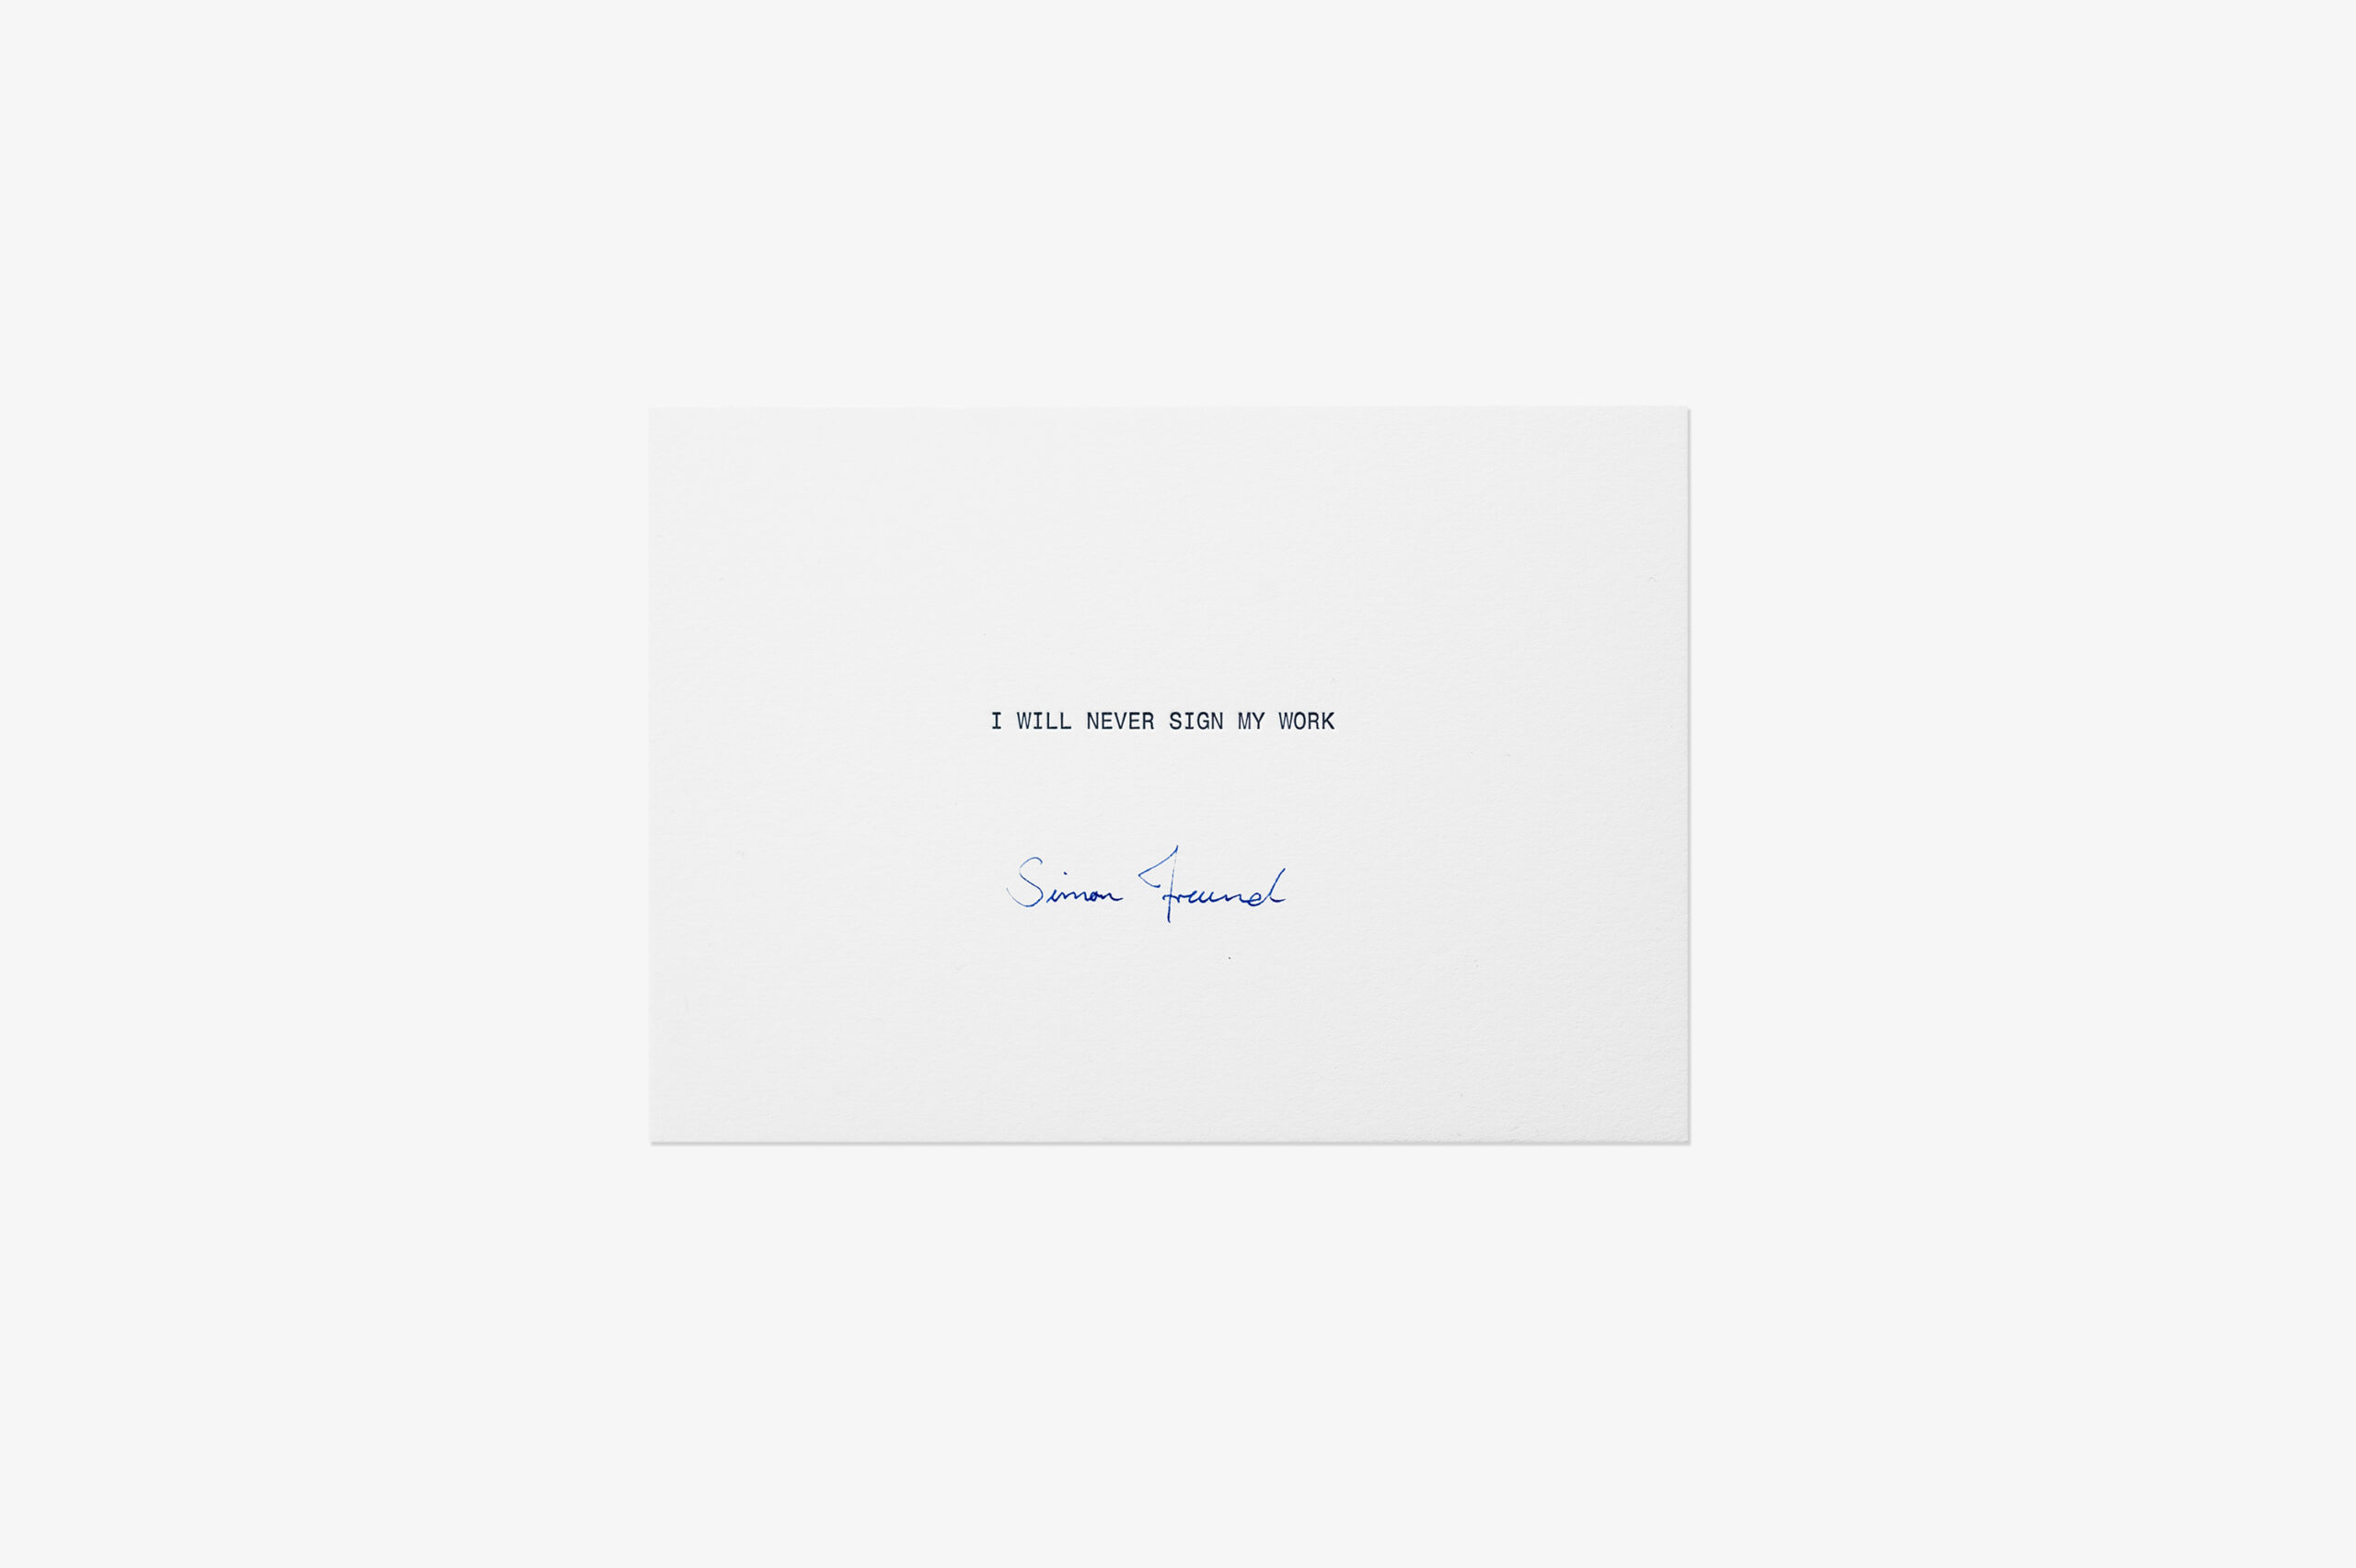 Simon Freund – I will never sign my work, 2018 – letterpress on cardboard, signature – 21 x 14,8 x 0,1 cm (each) – Edition of 10